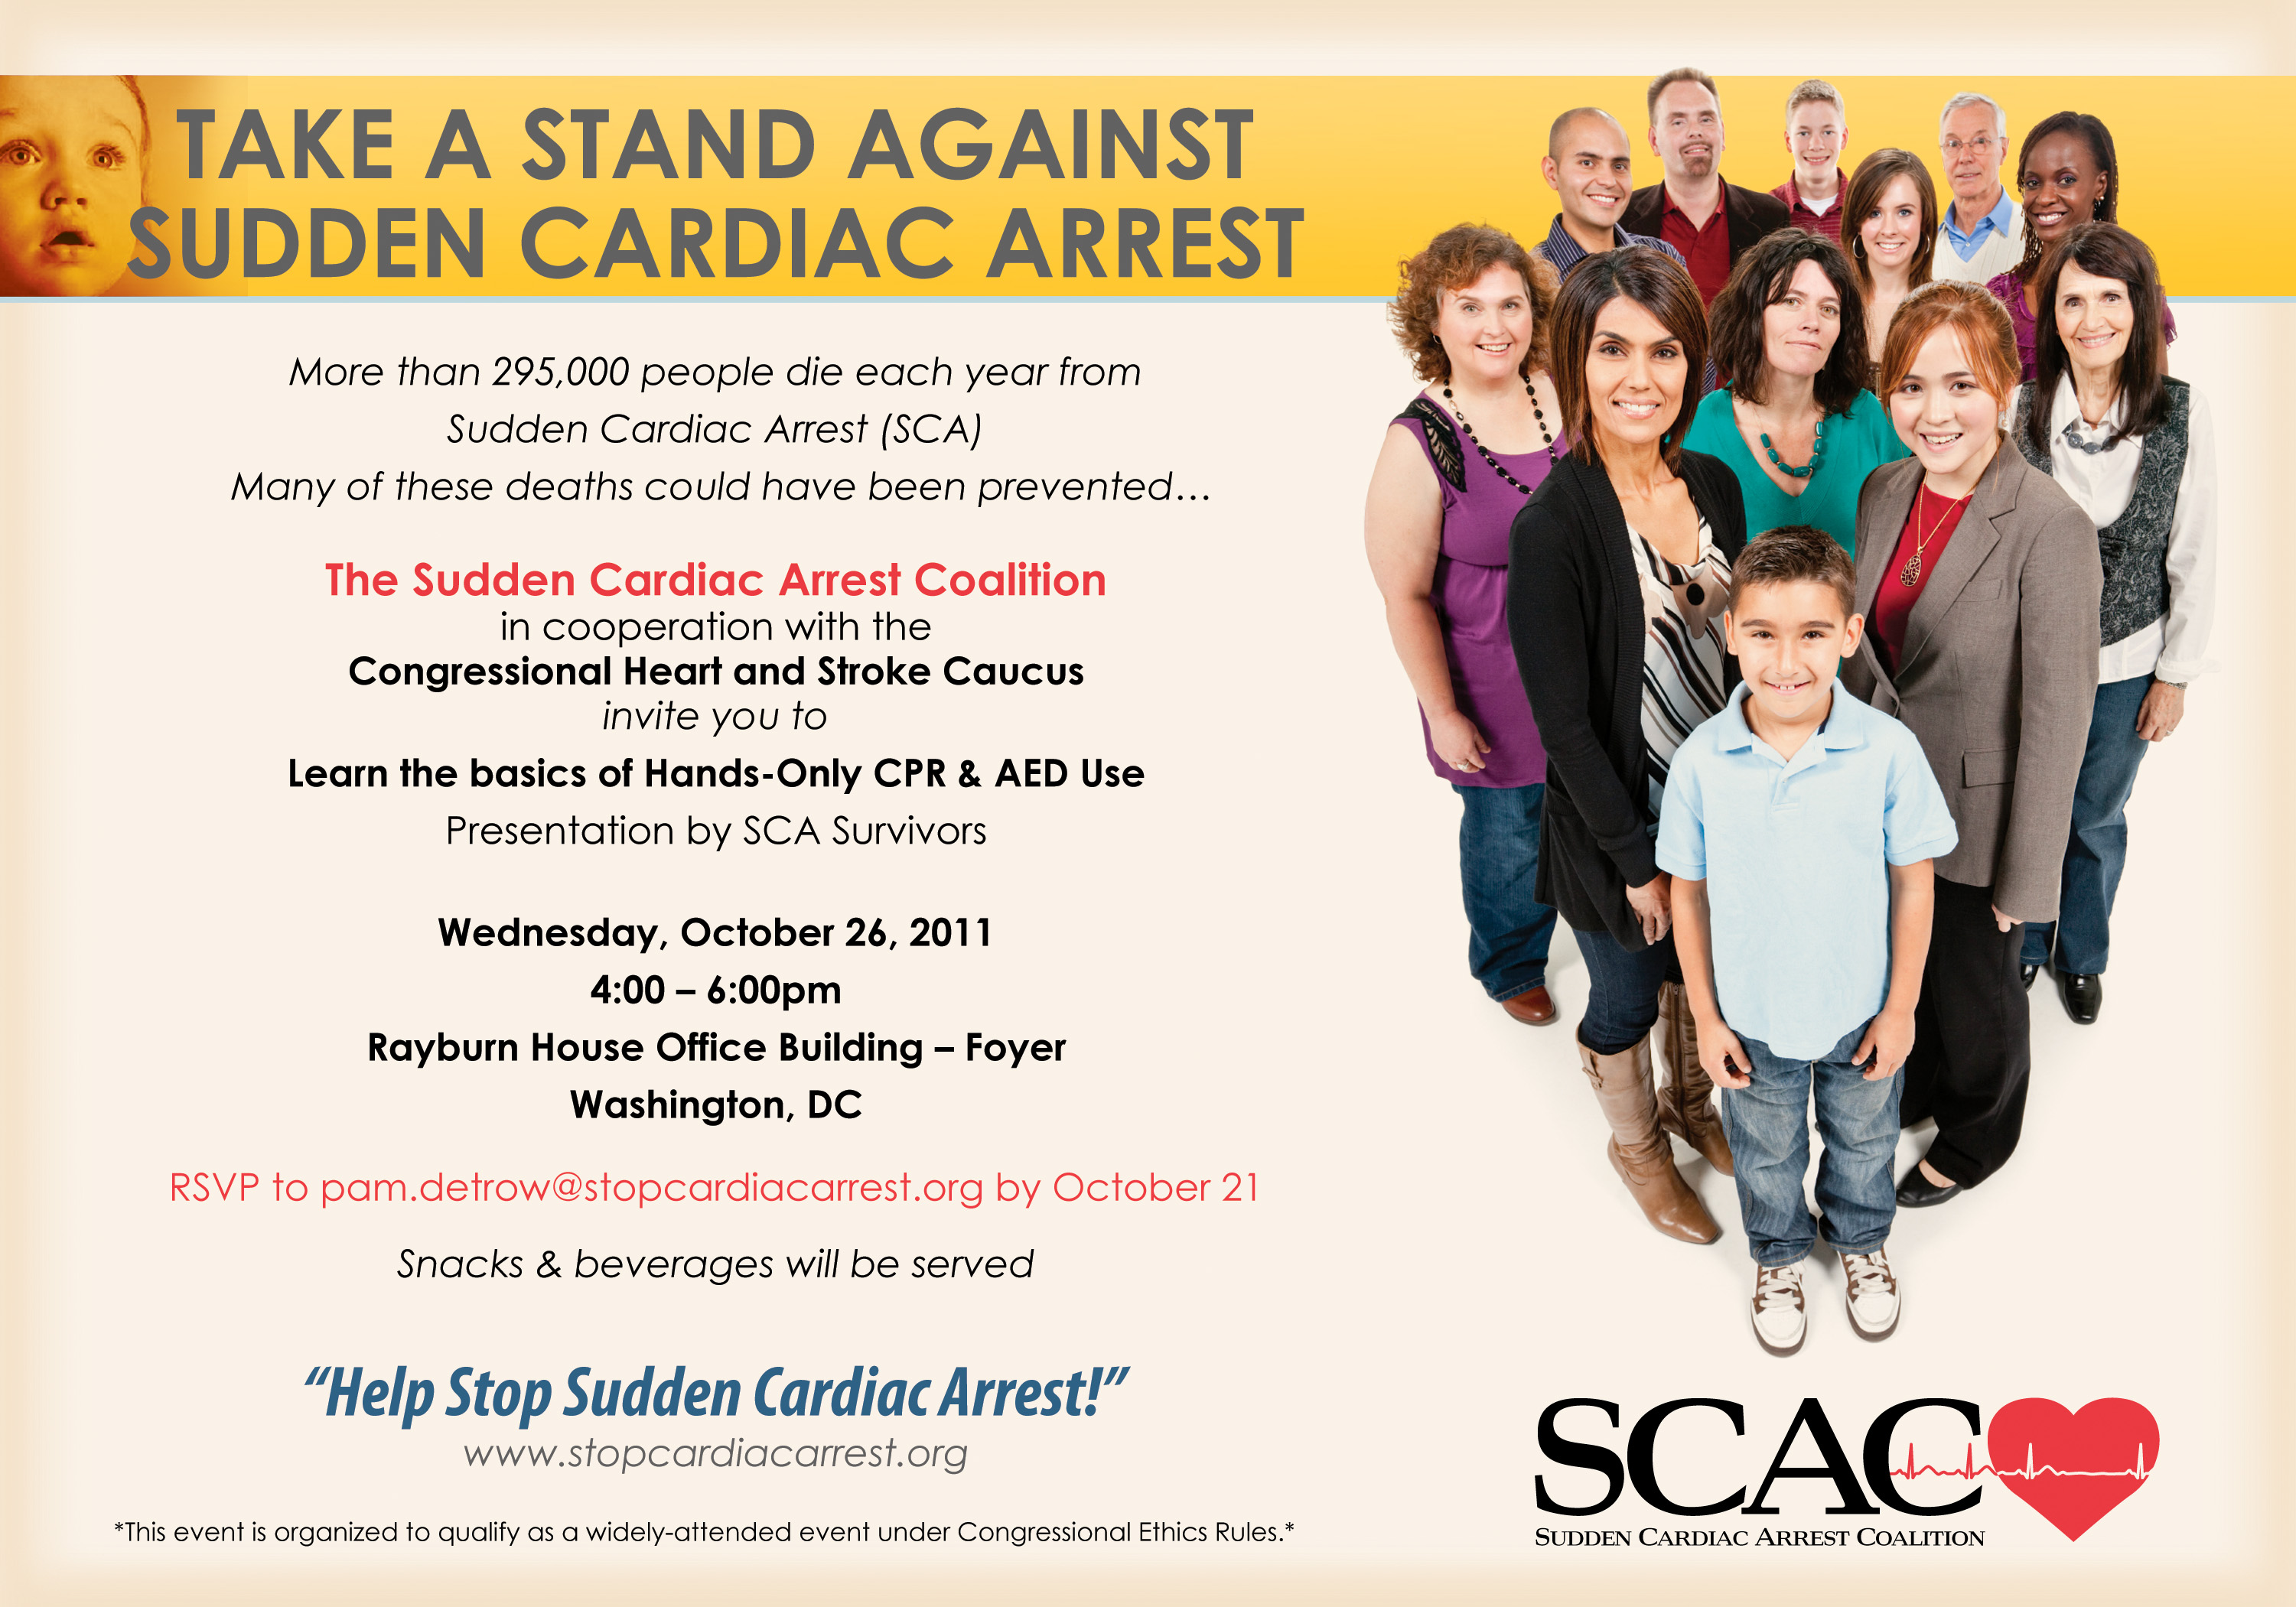 Take a Stand Against Sudden Cardiac Arrest